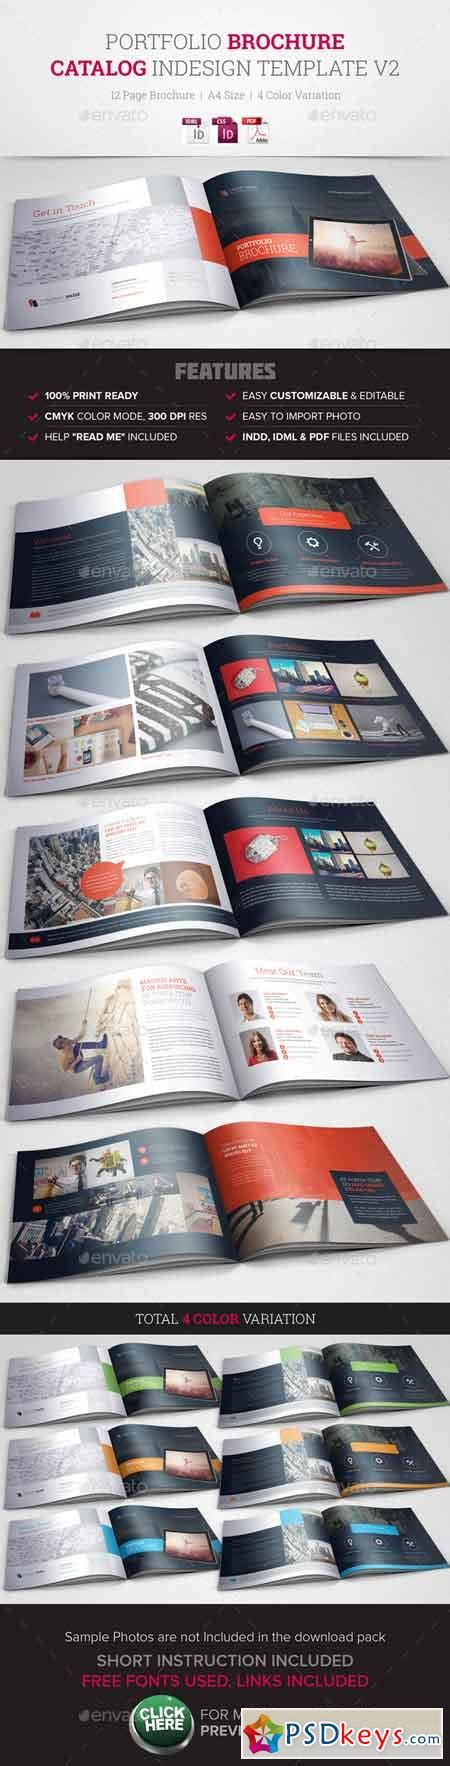 Portfolio Brochure Indesign Template V2 10491396 187 Free Download Photoshop Vector Stock Image Graphic Design Portfolio Template Indesign